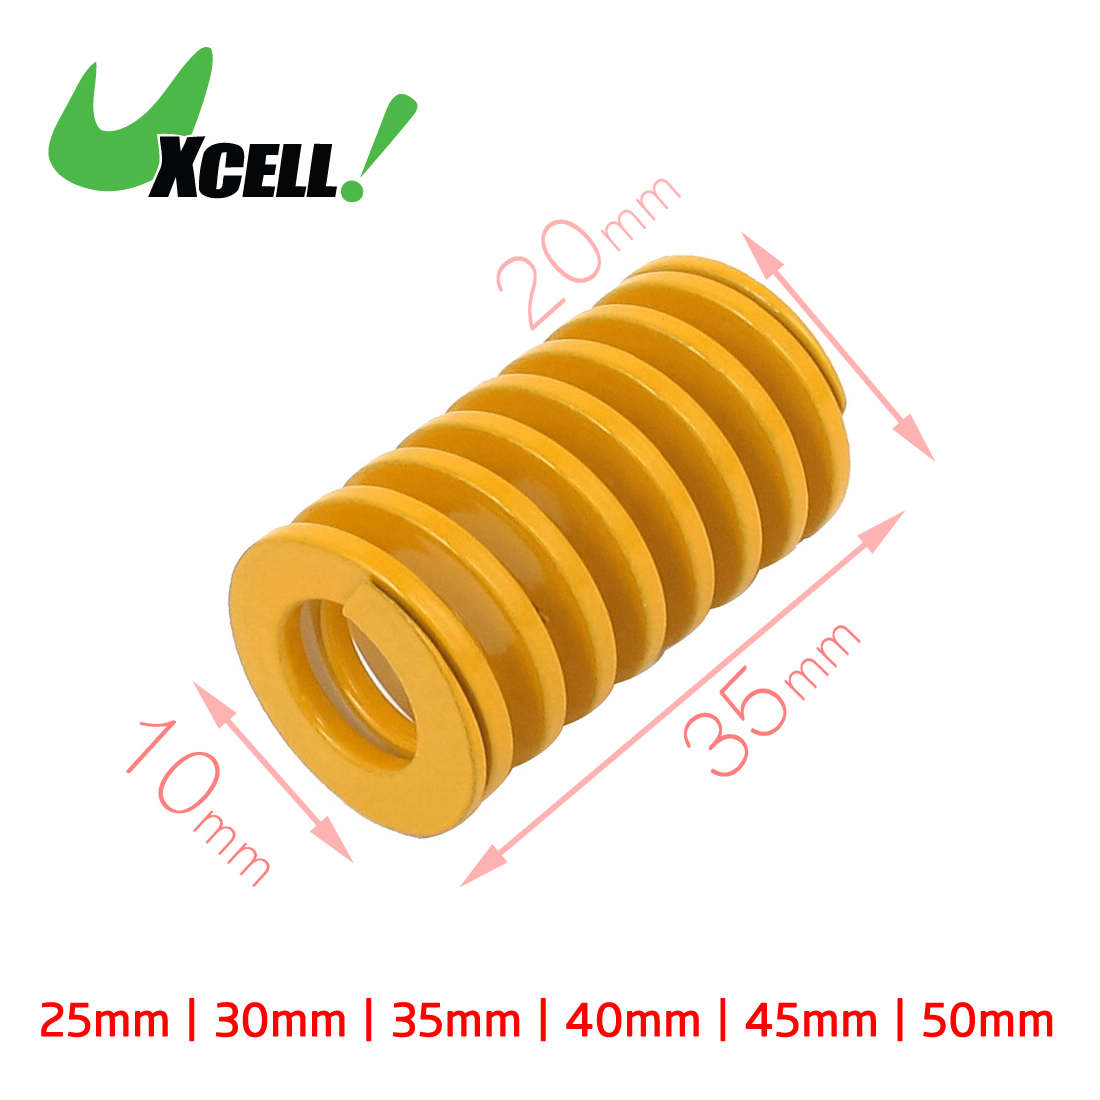 Uxcell Od 20mm Id 10mm 10.5mm Medium Load Spiral Stamping Compression Die Spring Red Yellow 25mm 40mm 45mm 50mm 65mm 70mm free shipping 10pcs 20mm x 10mm x 50mm spiral metal stamping compression die spring